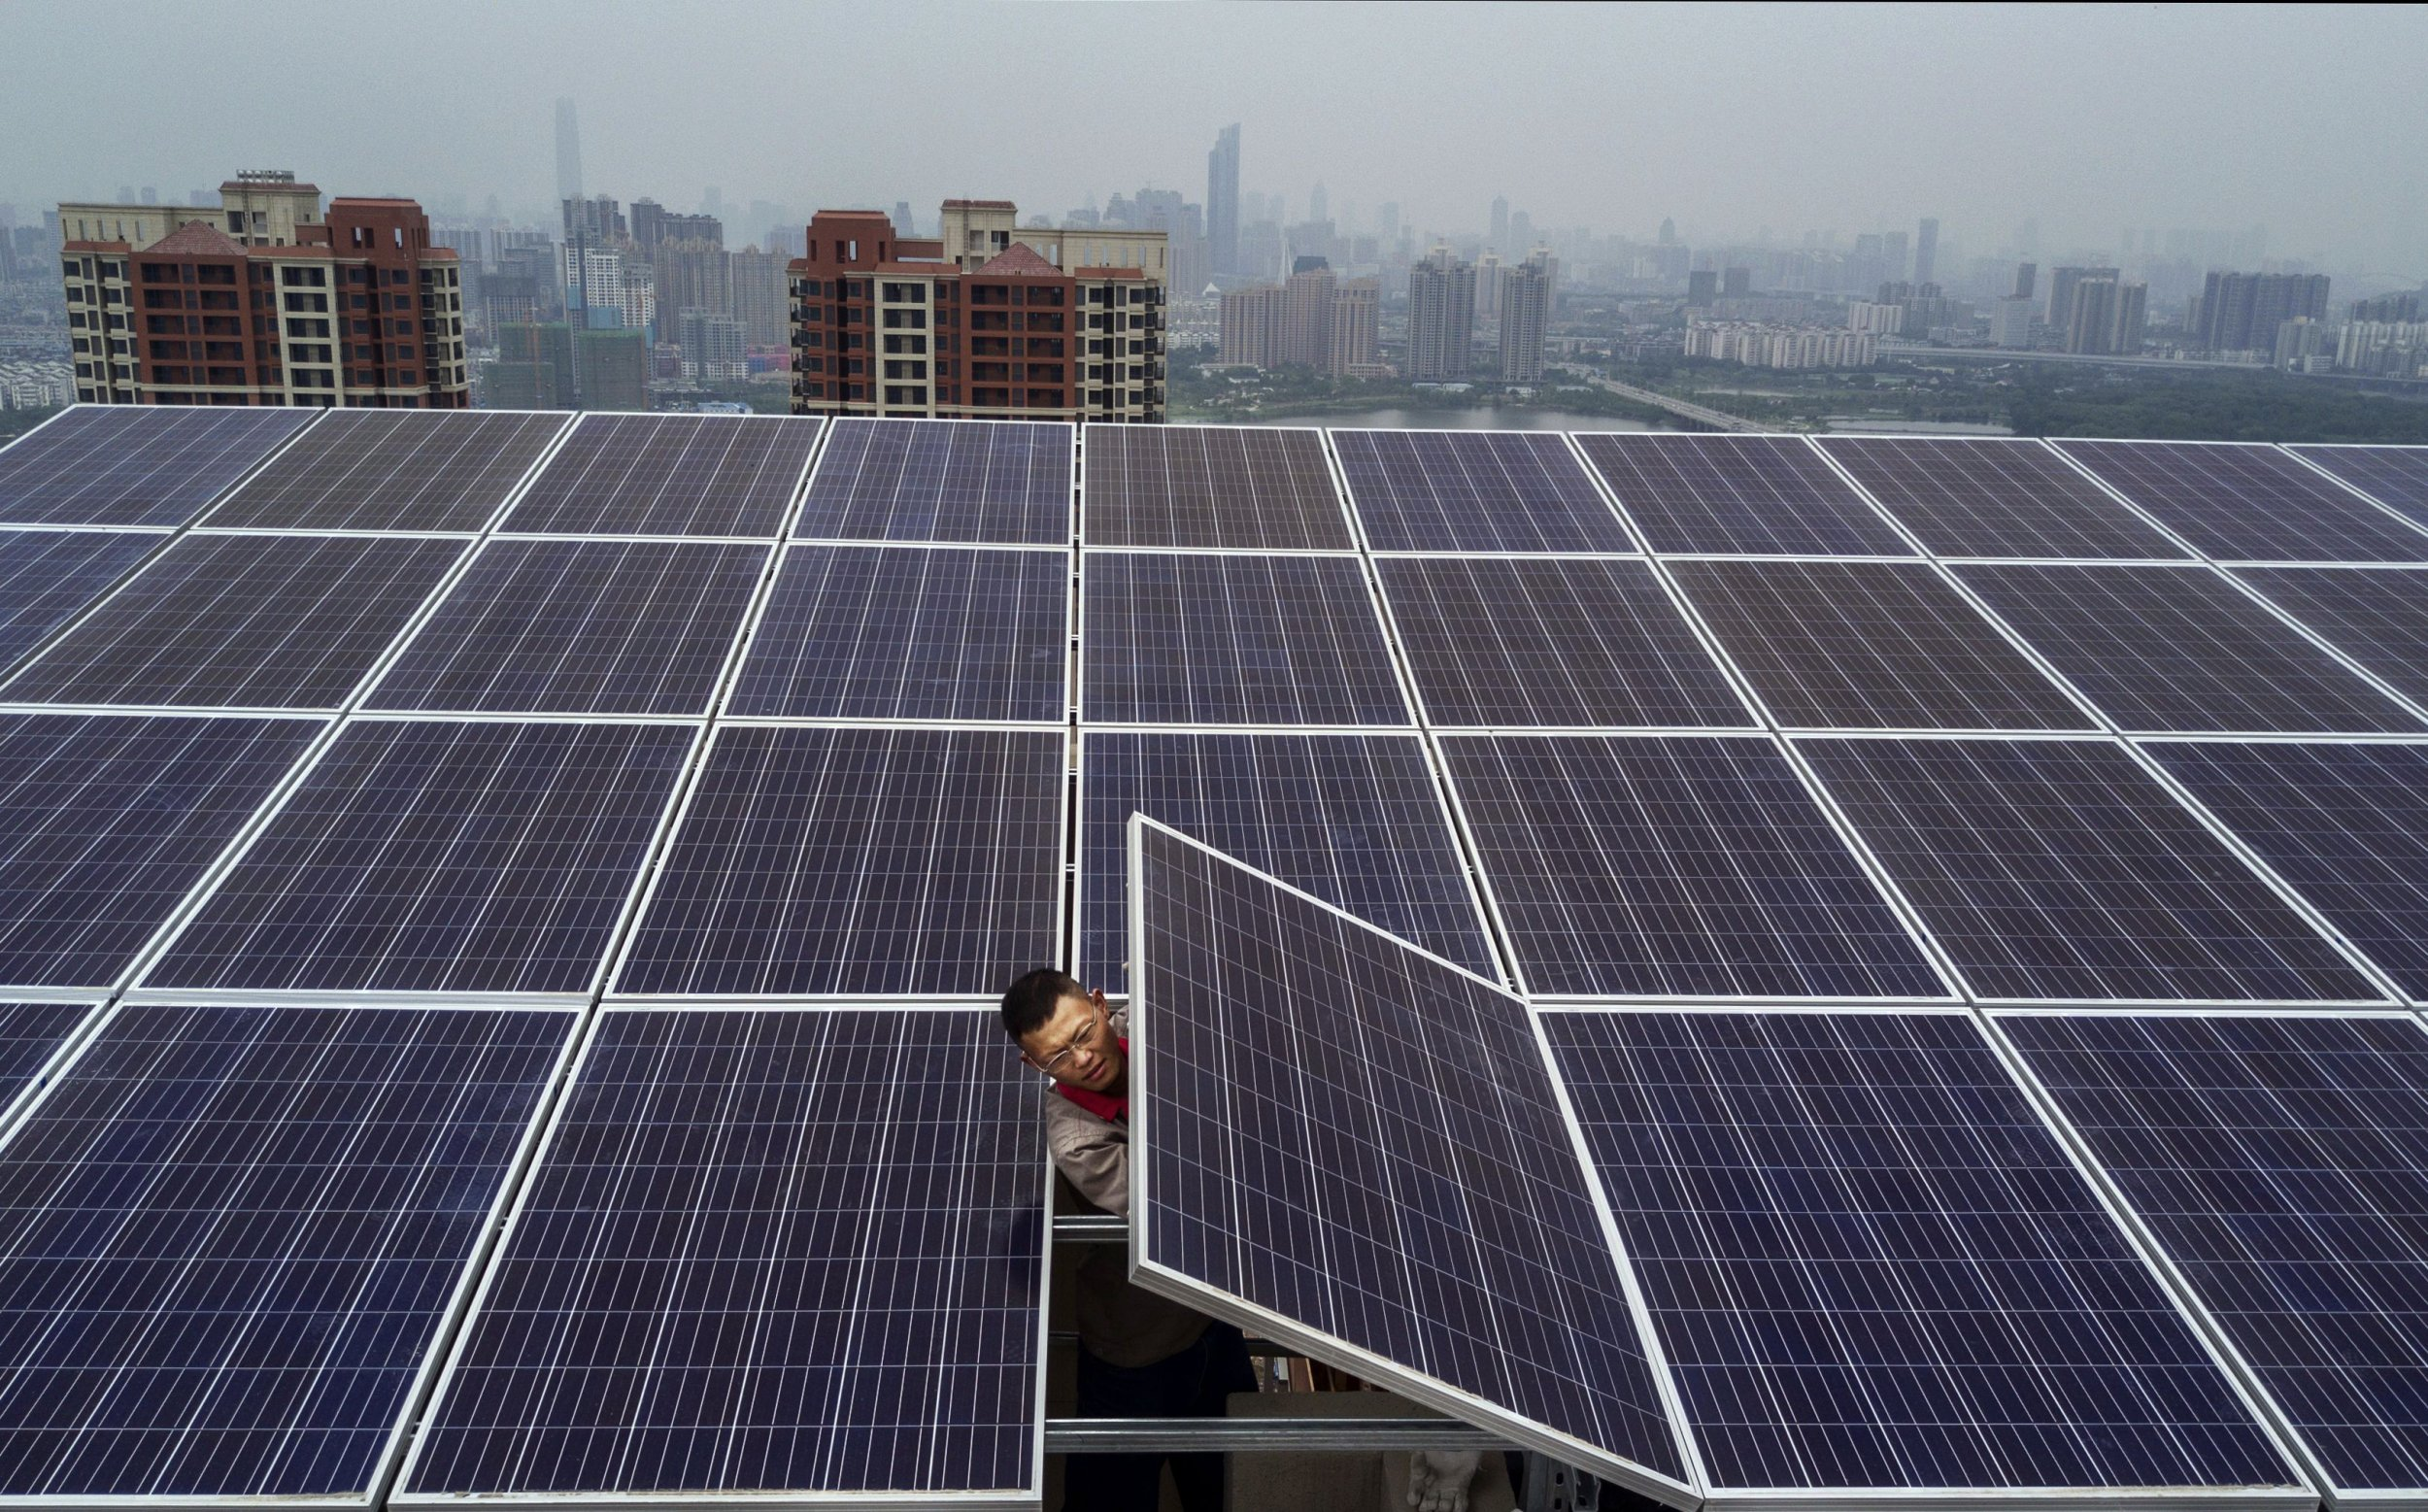 Solar Energy is Revolutionizing Markets While Trump Tries to Prop Up a Dying Coal Industry